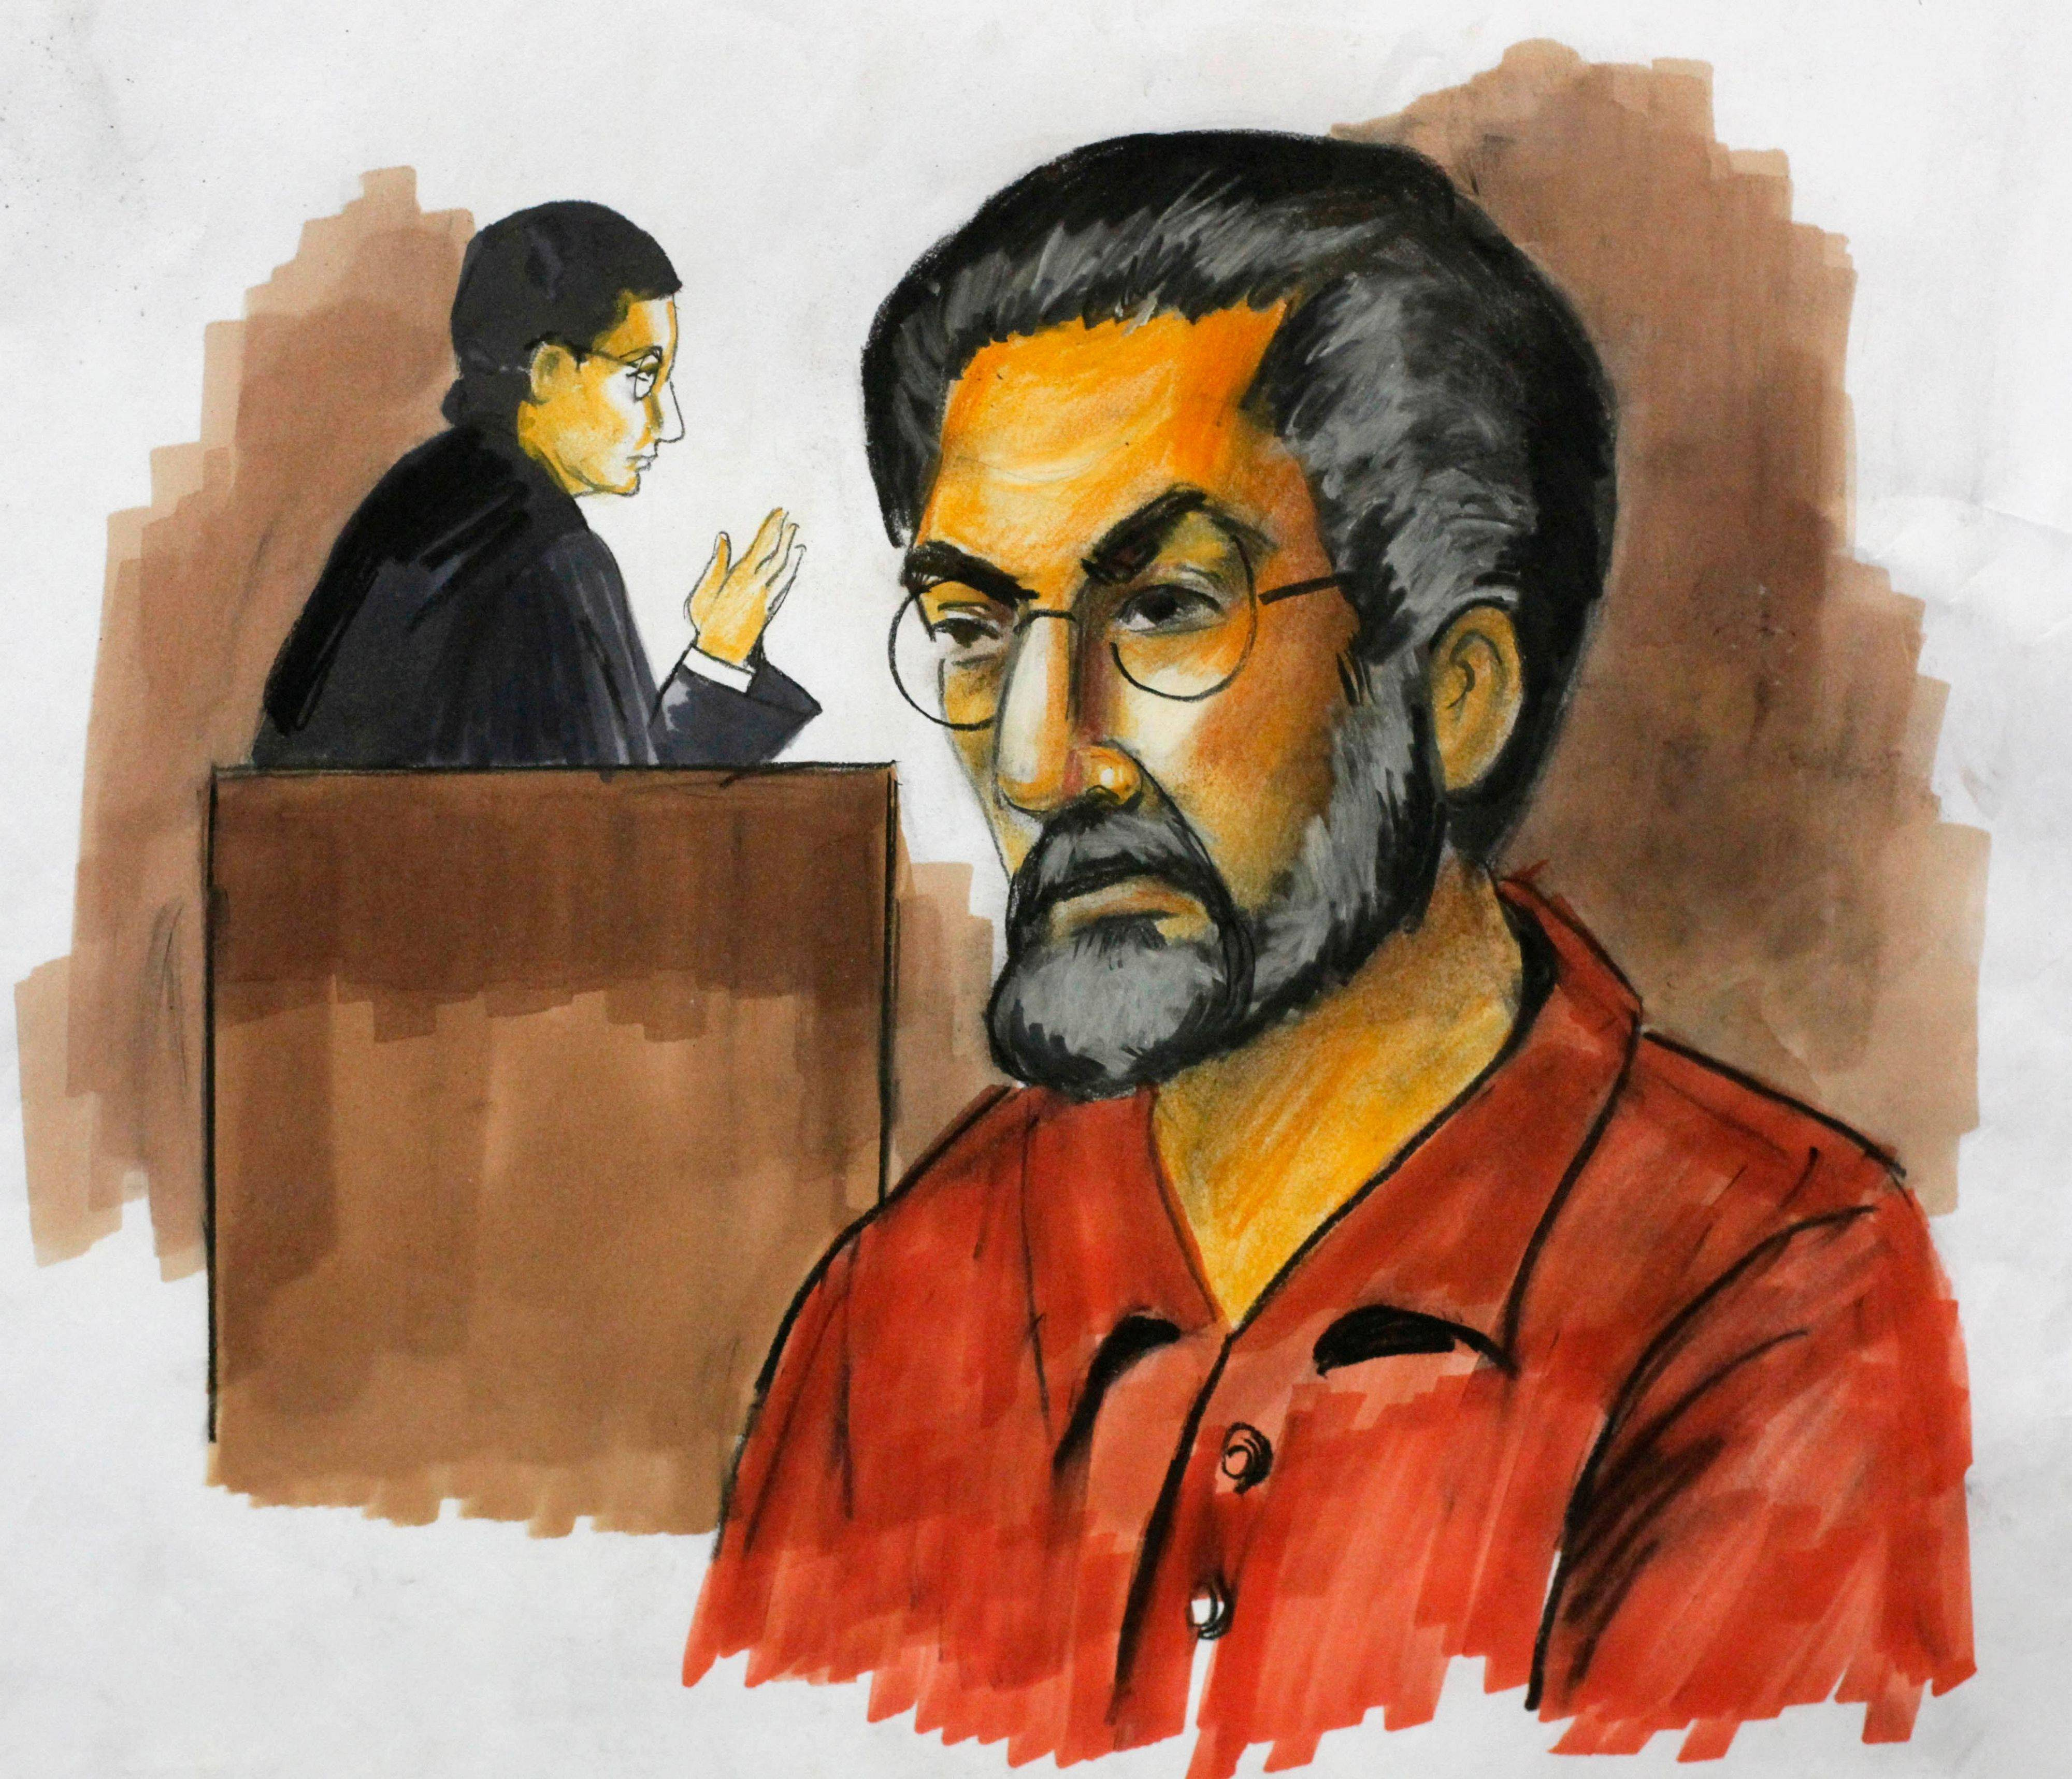 Tahawwur Rana was convicted in June in Chicago of aiding a terrorist group that took credit for the deadly 2008 Mumbai attacks.